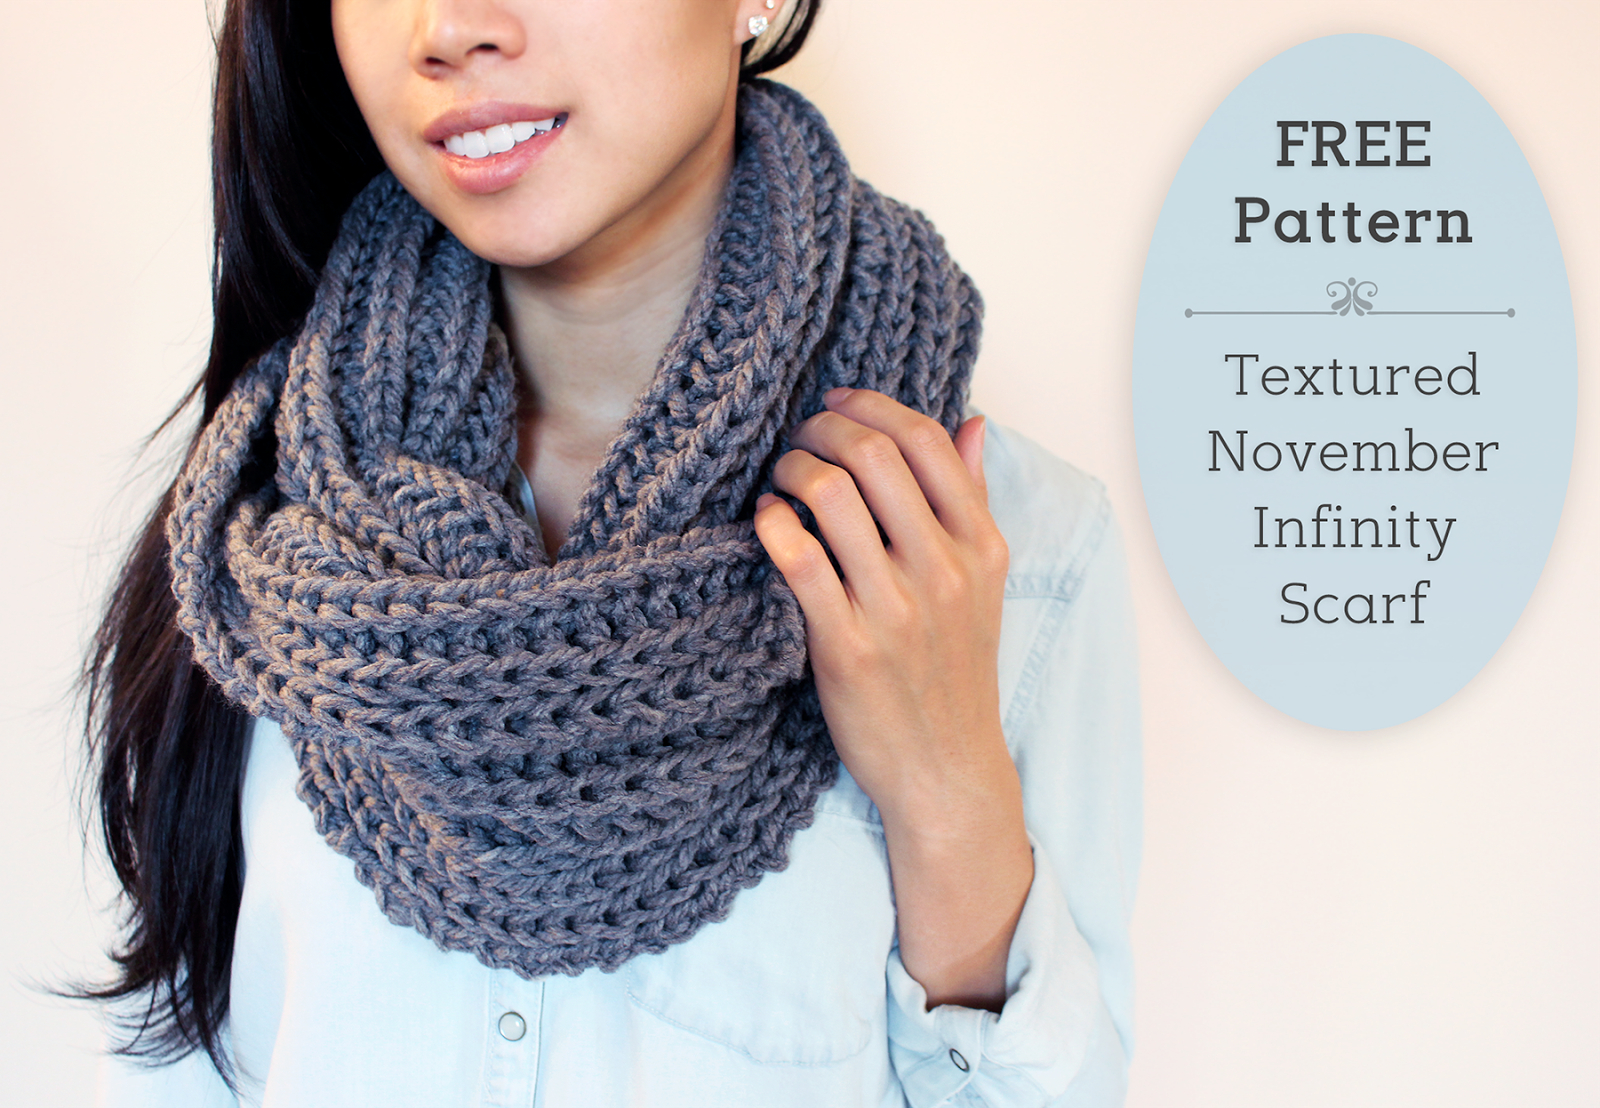 Free Knitting Patterns For Beginners Uk Chunky Scarf Knitting Patterns For Beginners Crochet And Free